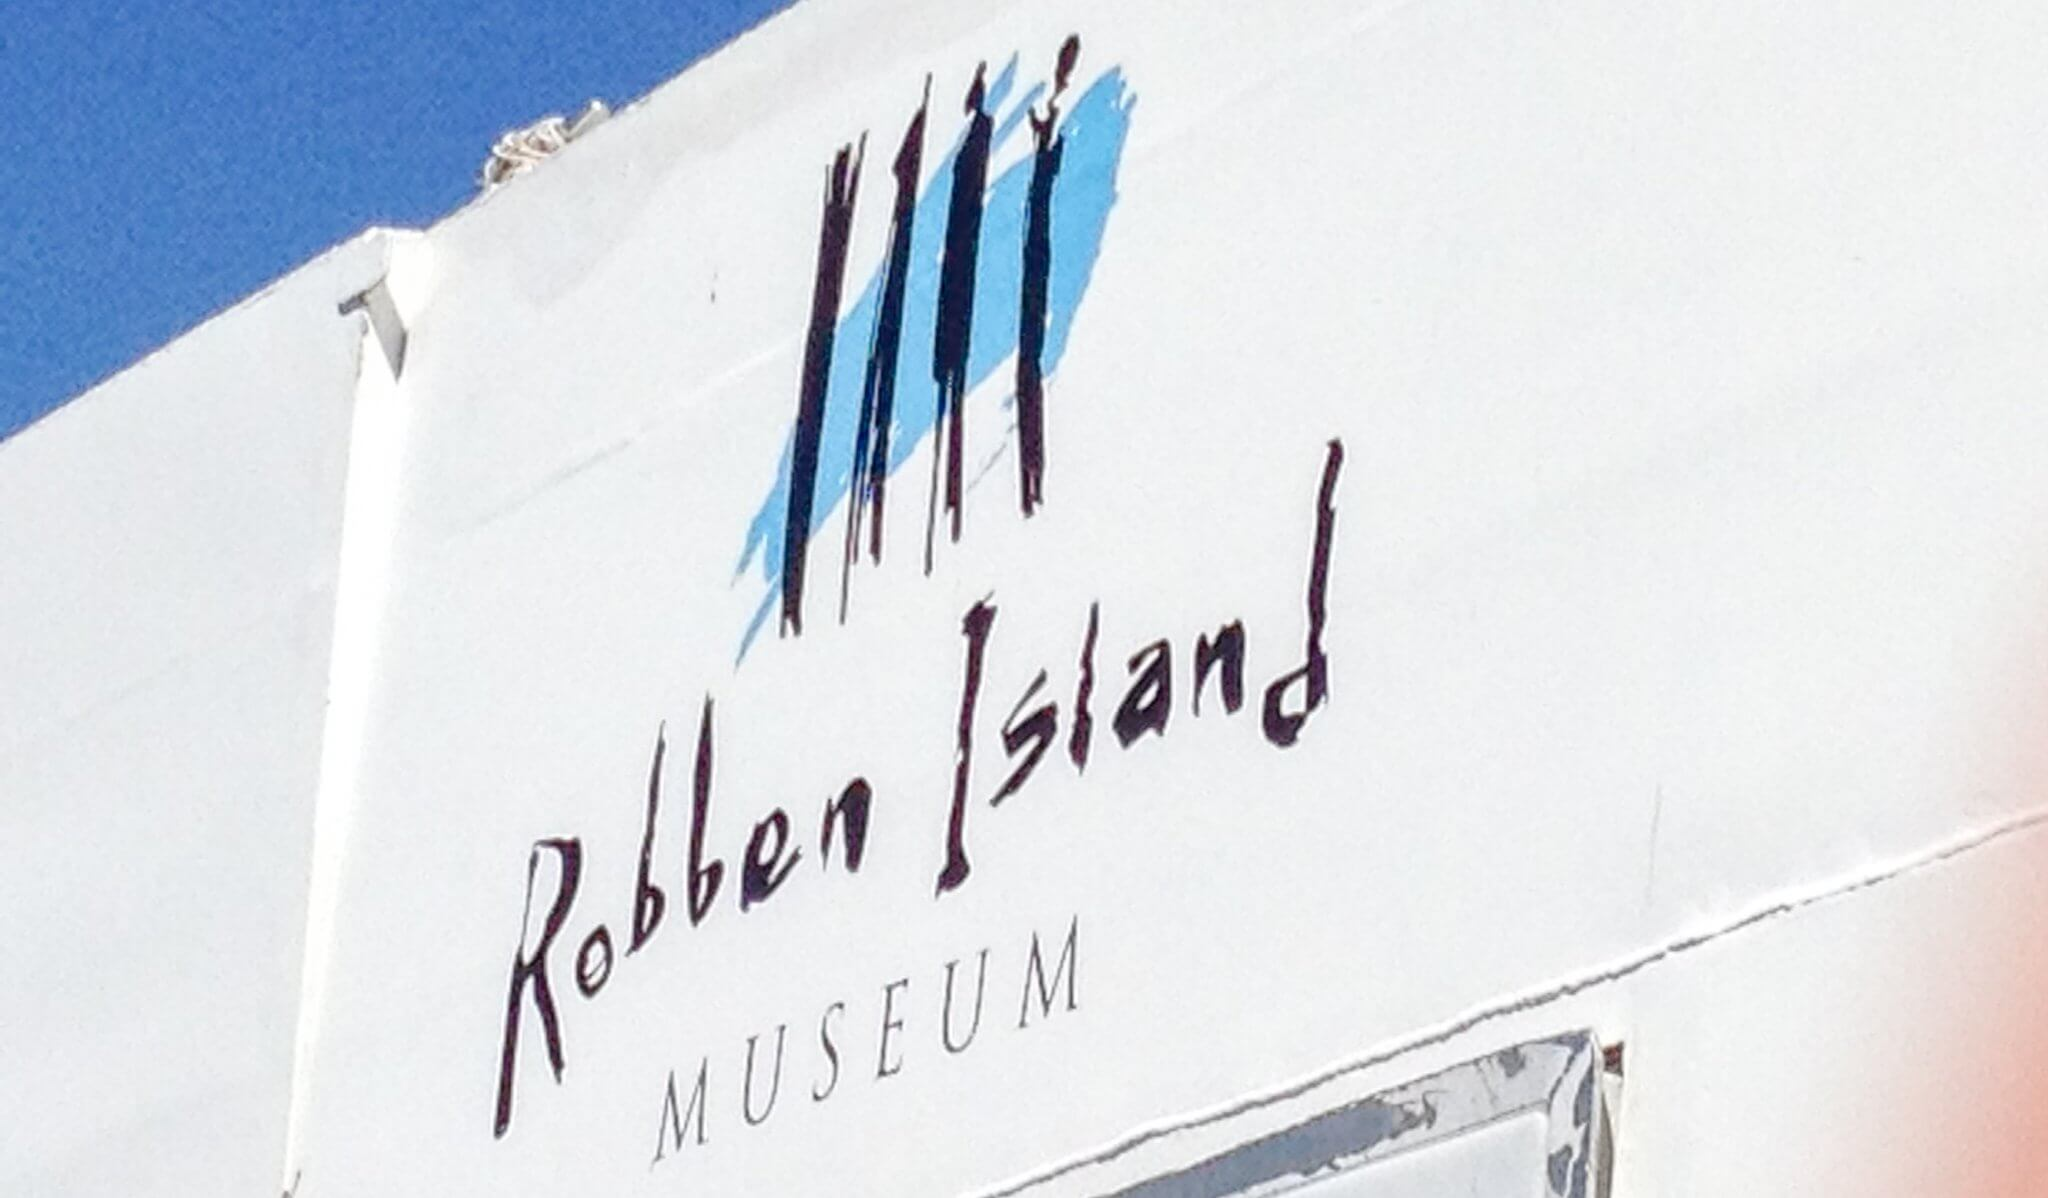 Robben Island Museum - Cape Town, South Africa